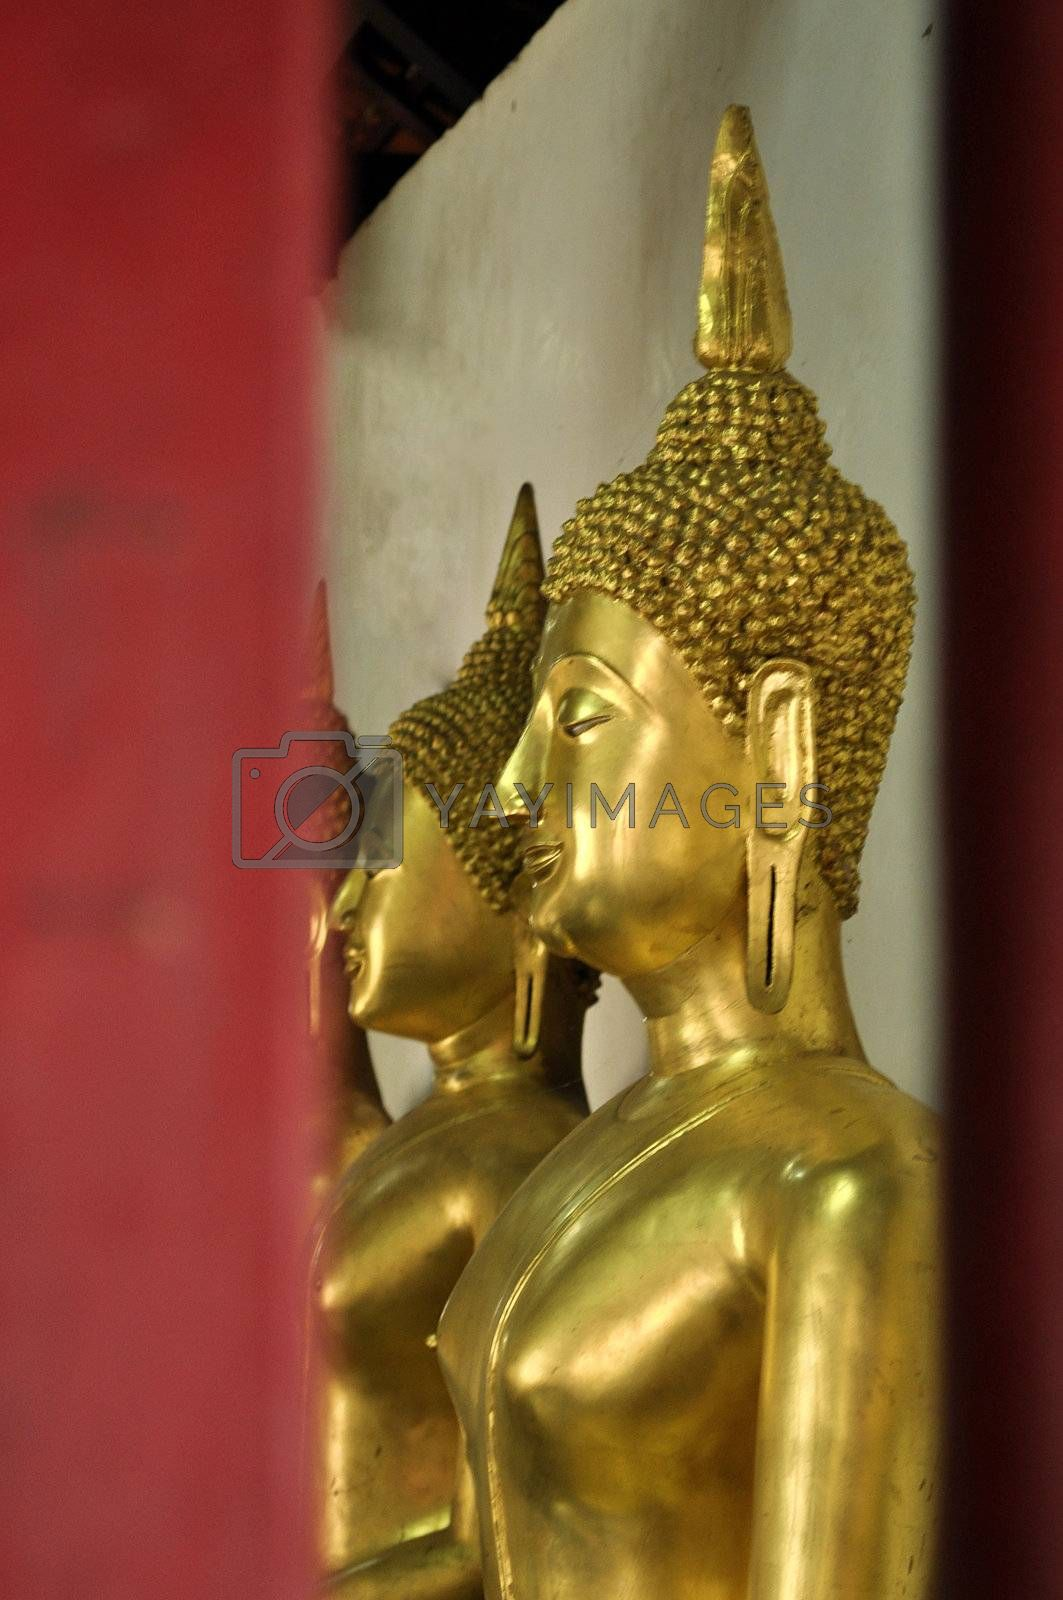 Buddhism is a religion and philosophy encompassing a variety of traditions, beliefs and practices, largely based on teachings attributed to Siddhartha Gautama, commonly known as the Buddha.